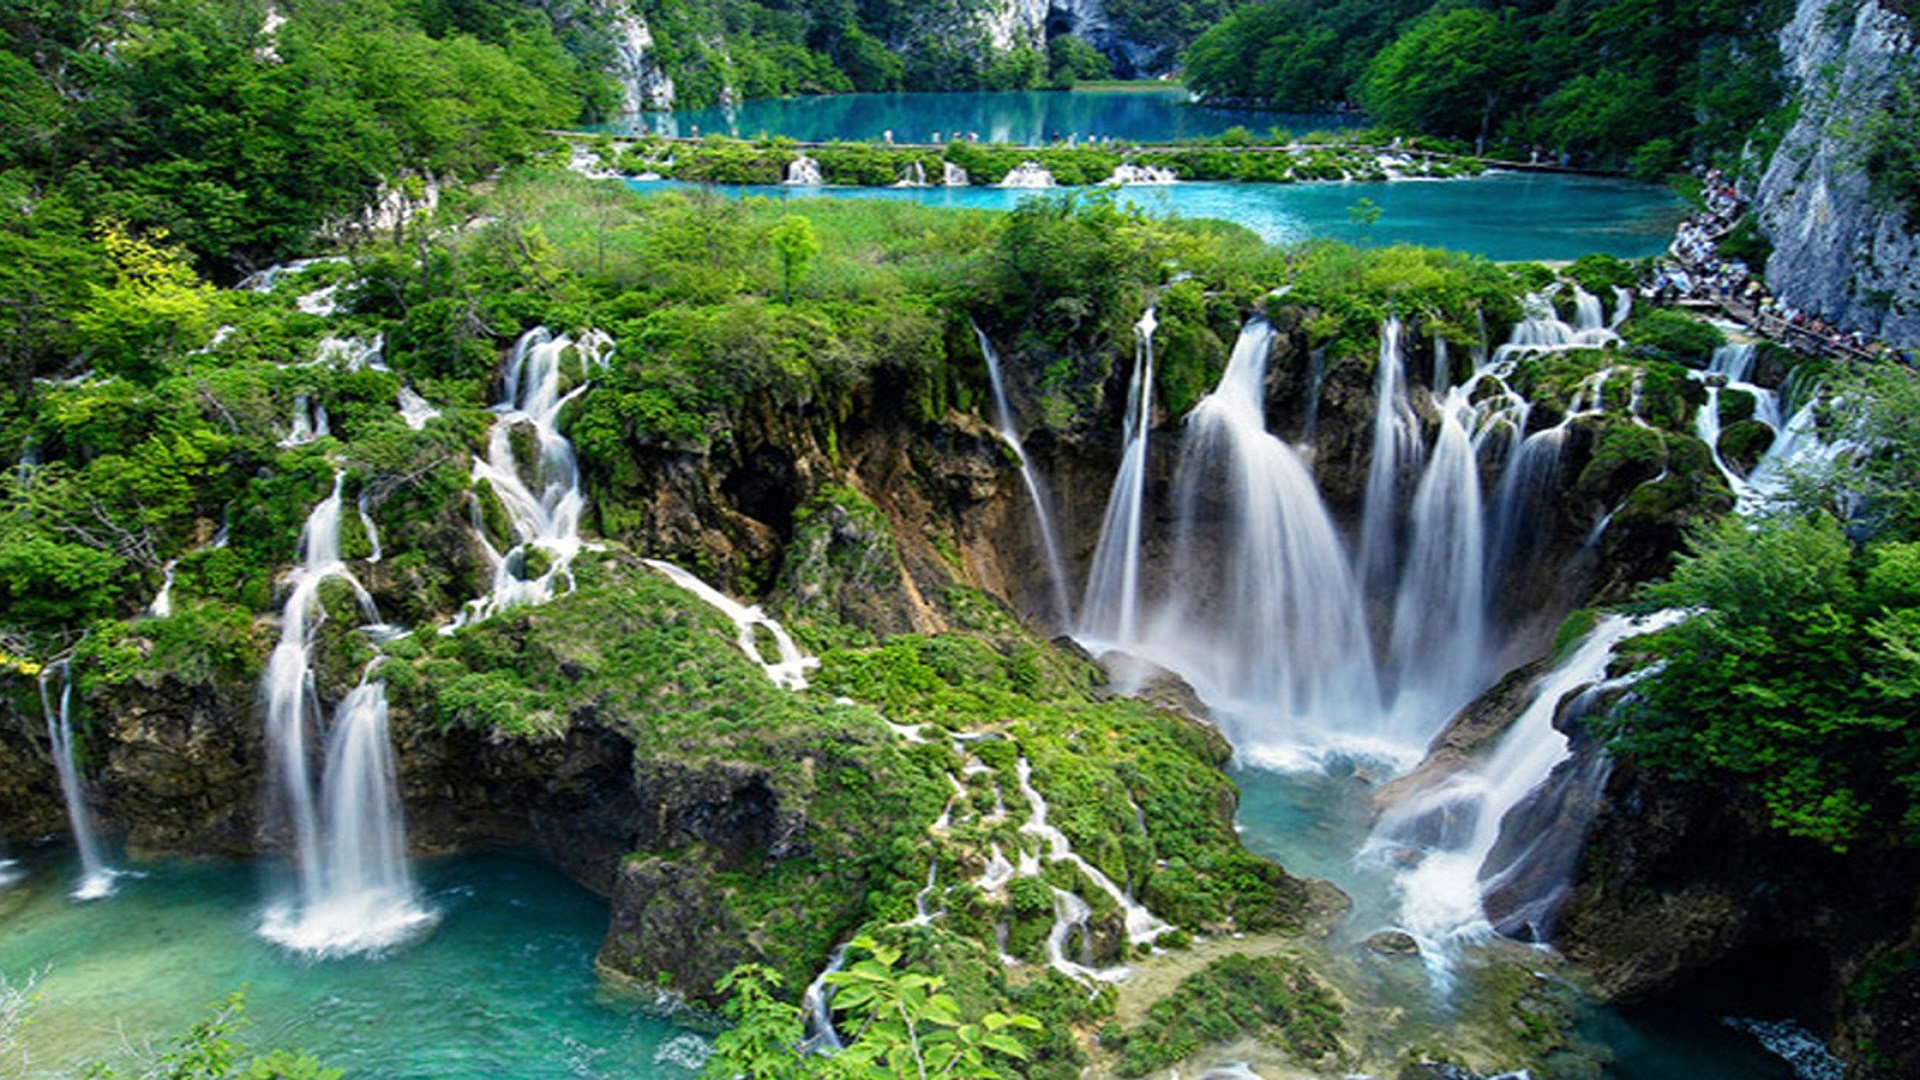 Free Hd 3d Wallpapers For Desktop Nature Waterfalls Wallpapers For Desktop Free Hd Hd